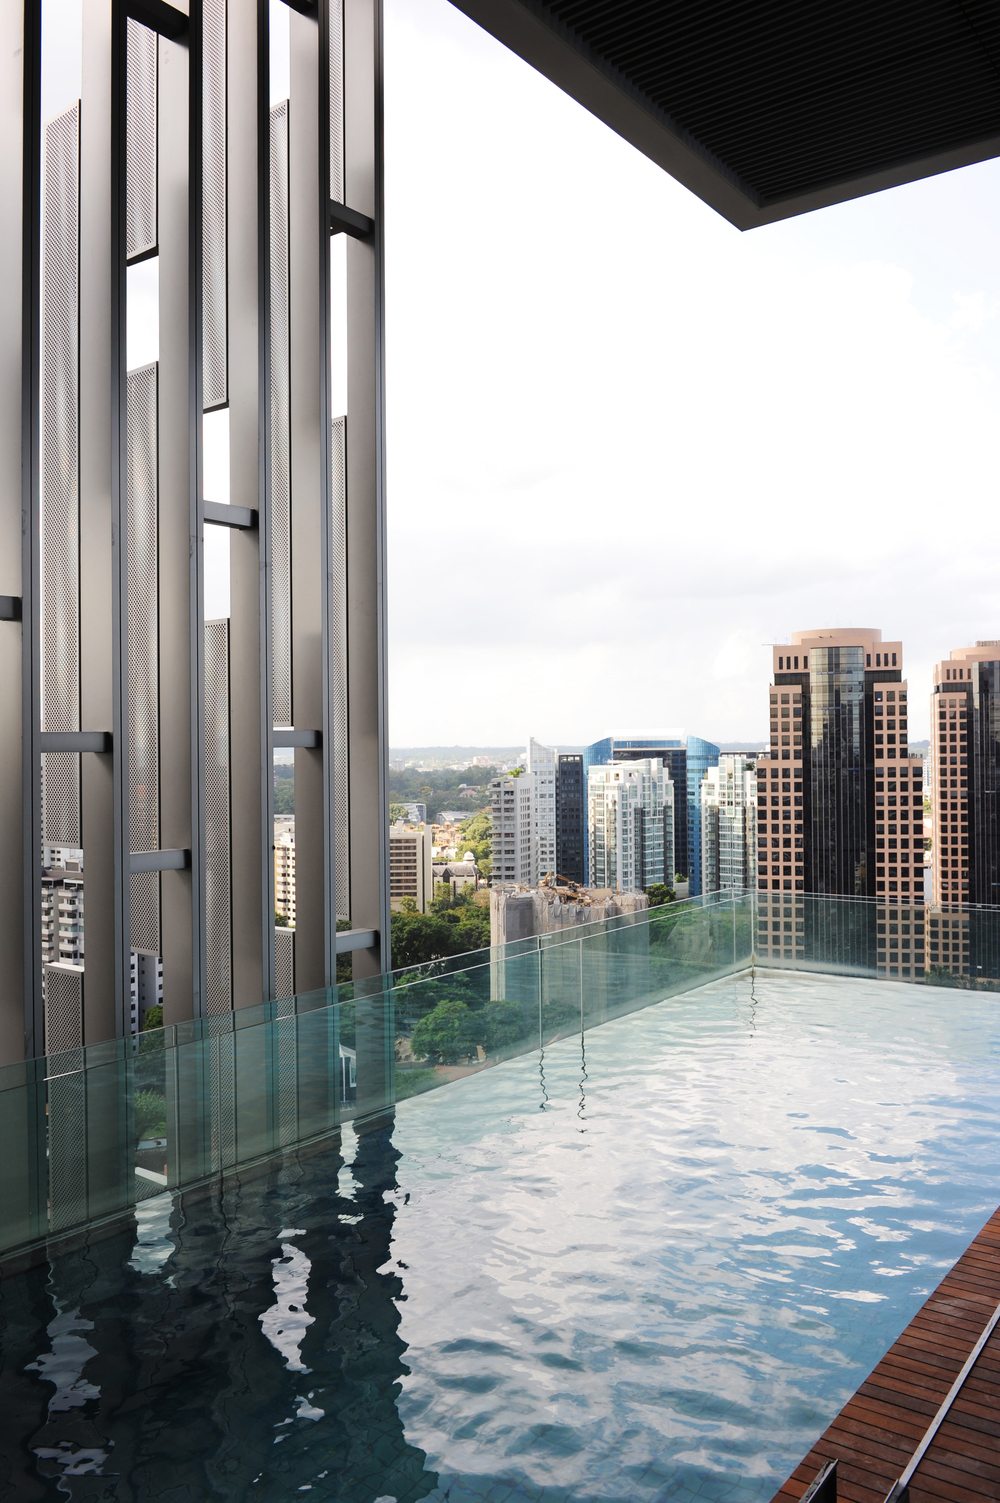 The Marq in Singapore features cantilevered 15-metre pools from the building's glass façade